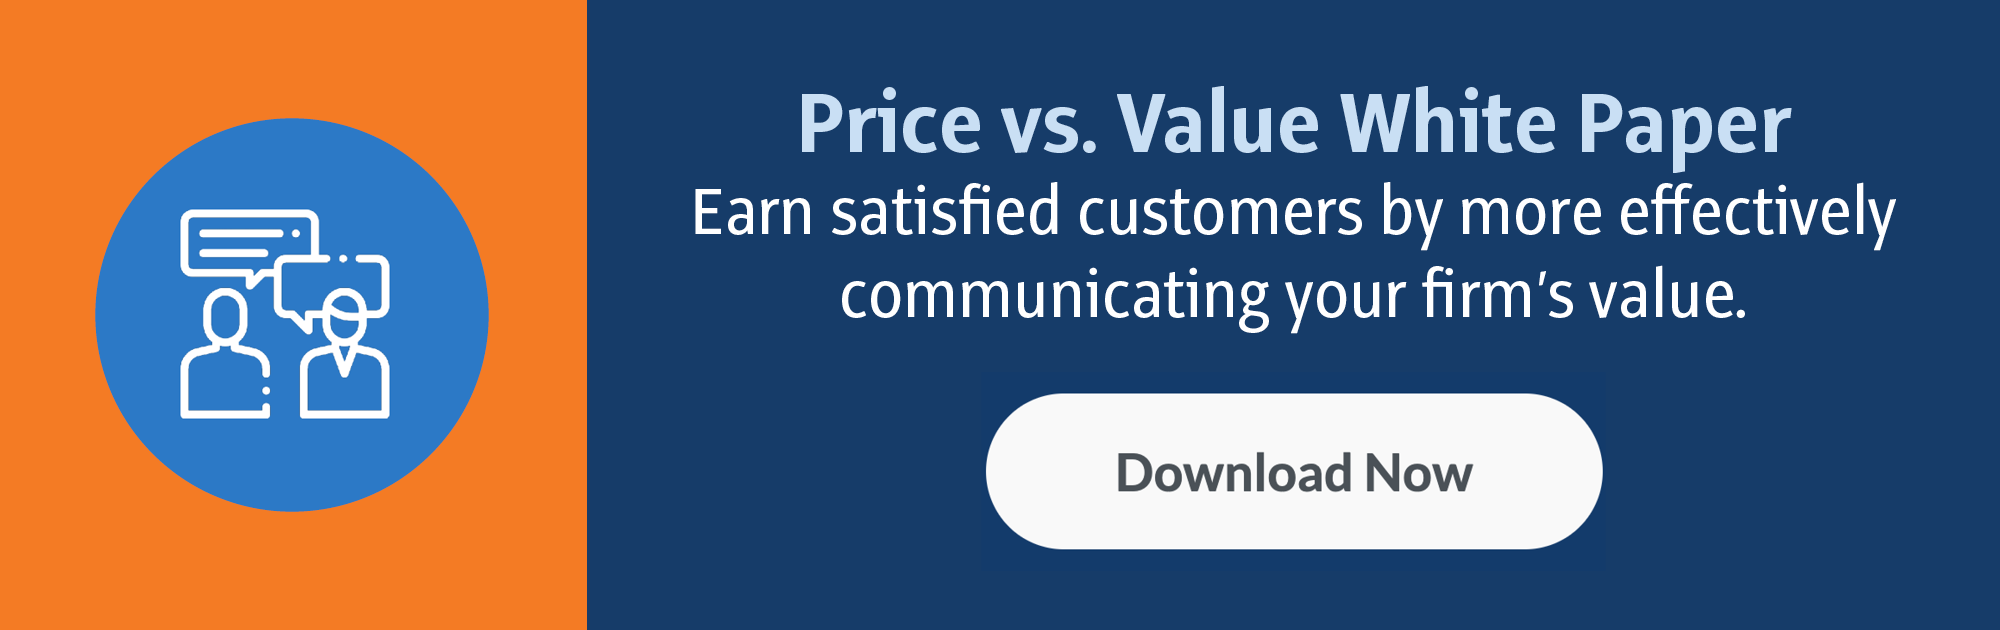 Price vs. Value White Paper: Earn satisfied customers by more effectively communicating your firm's value. (Download Now)